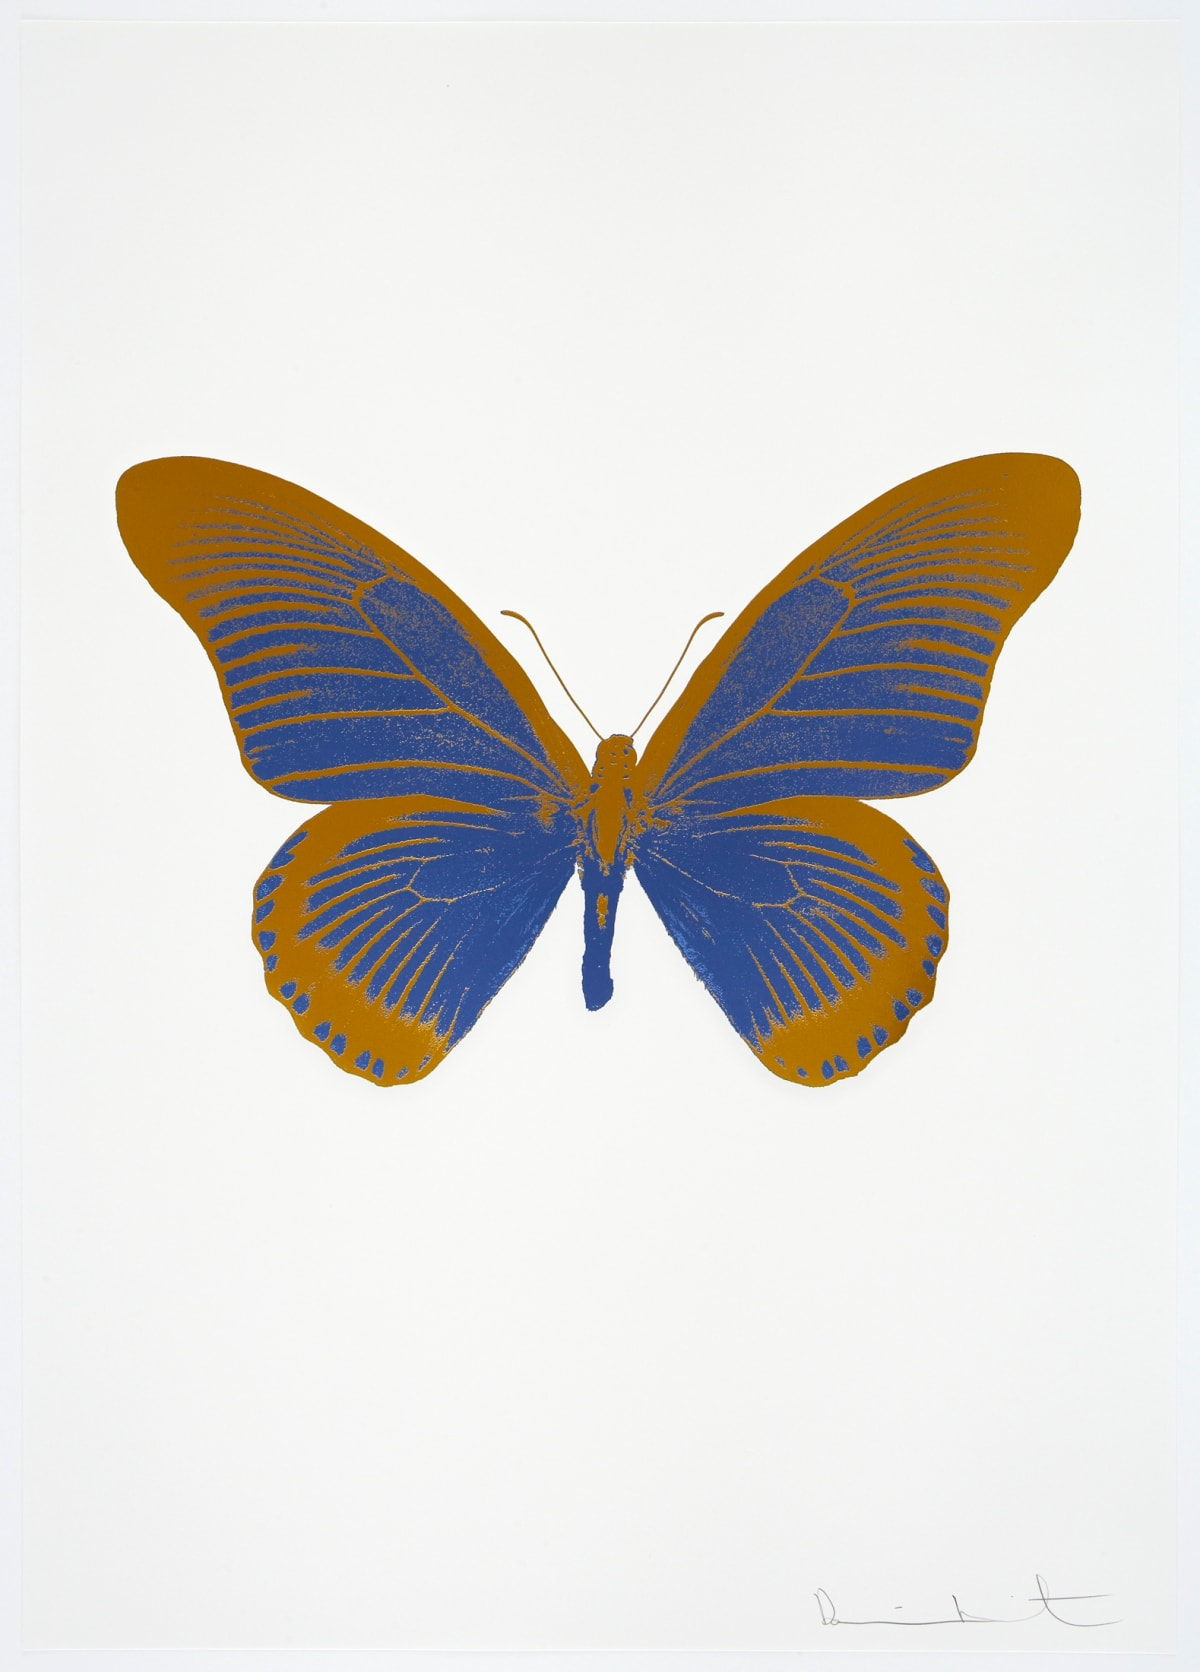 Damien Hirst The Souls IV - Frost Blue/Paradise Copper, 2010 2 colour foil block on 300gsm Arches 88 archival paper. Signed and numbered. Published by Paul Stolper and Other Criteria 72 x 51cm OC8022 / 1418-45 Edition of 15